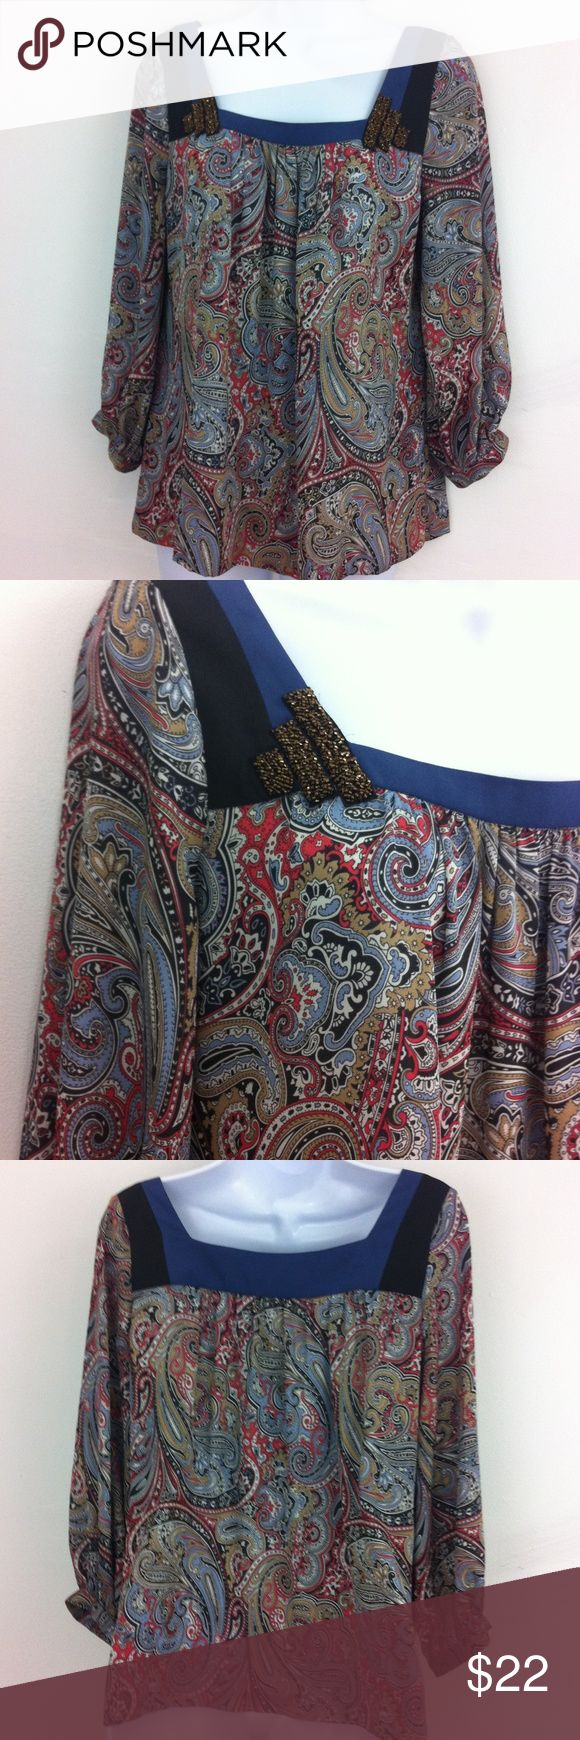 BCBG Generation paisley top Silky paisley top with blue & black trim and adorned in corners by a brass colored beaded  detail. Gently worn and no flaws. Tag size XS BCBGeneration Tops